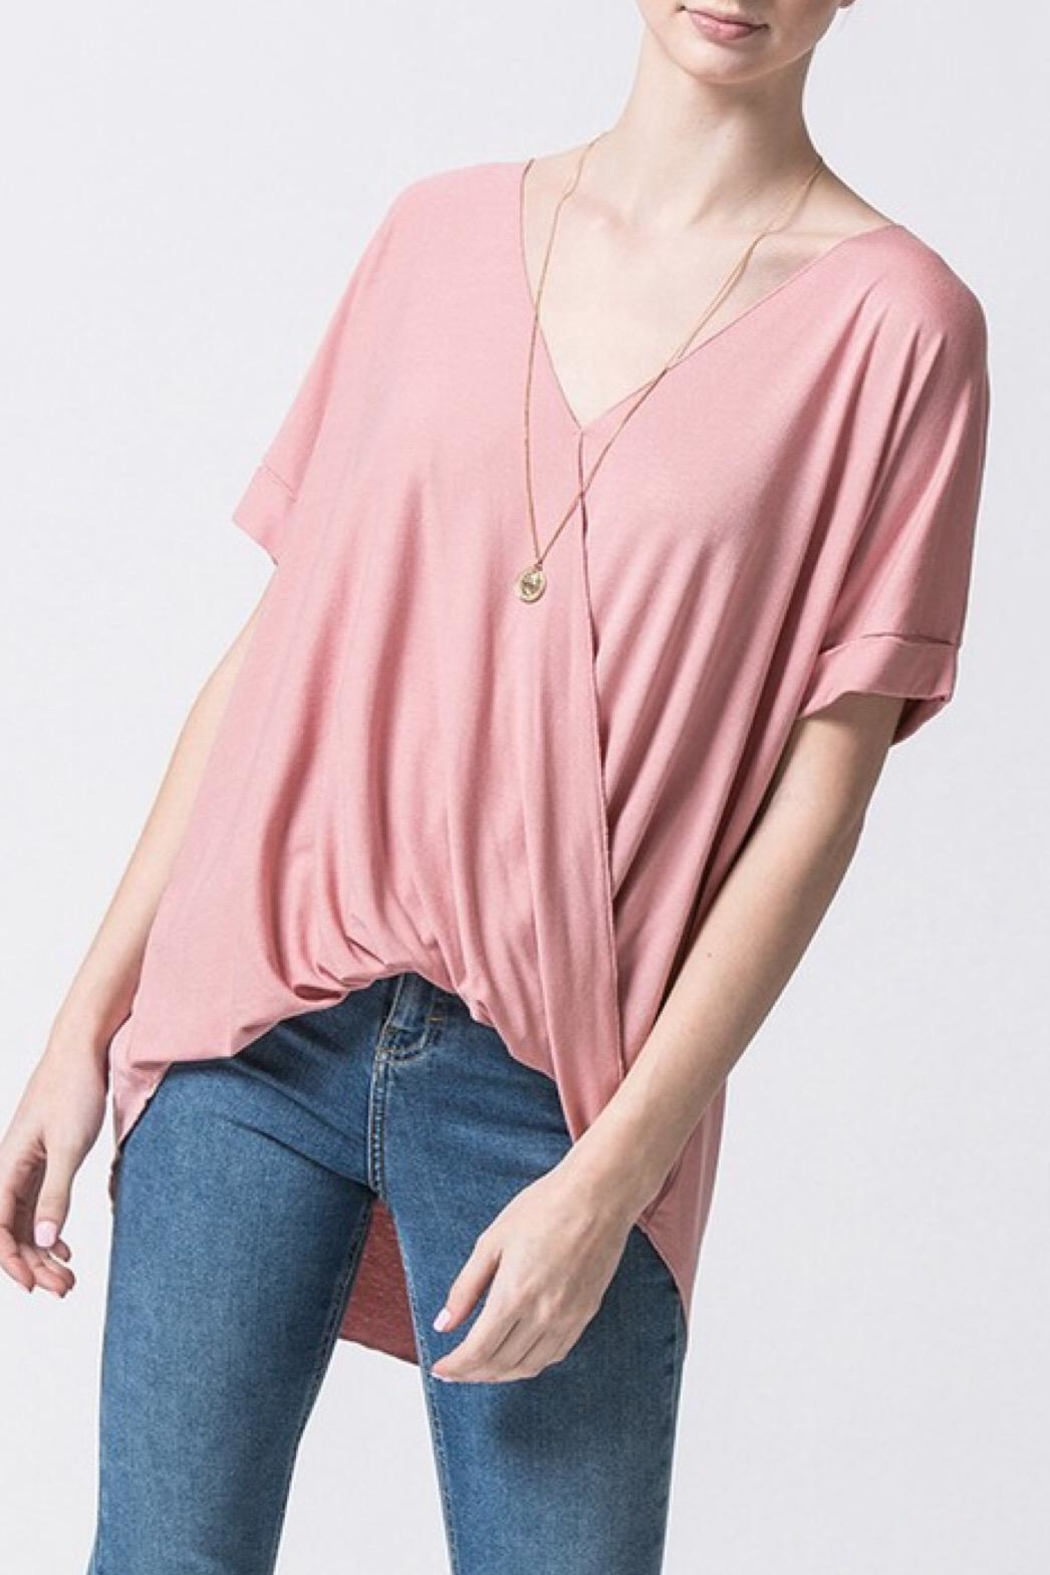 Double Zero Mauve Casual Top - Front Cropped Image